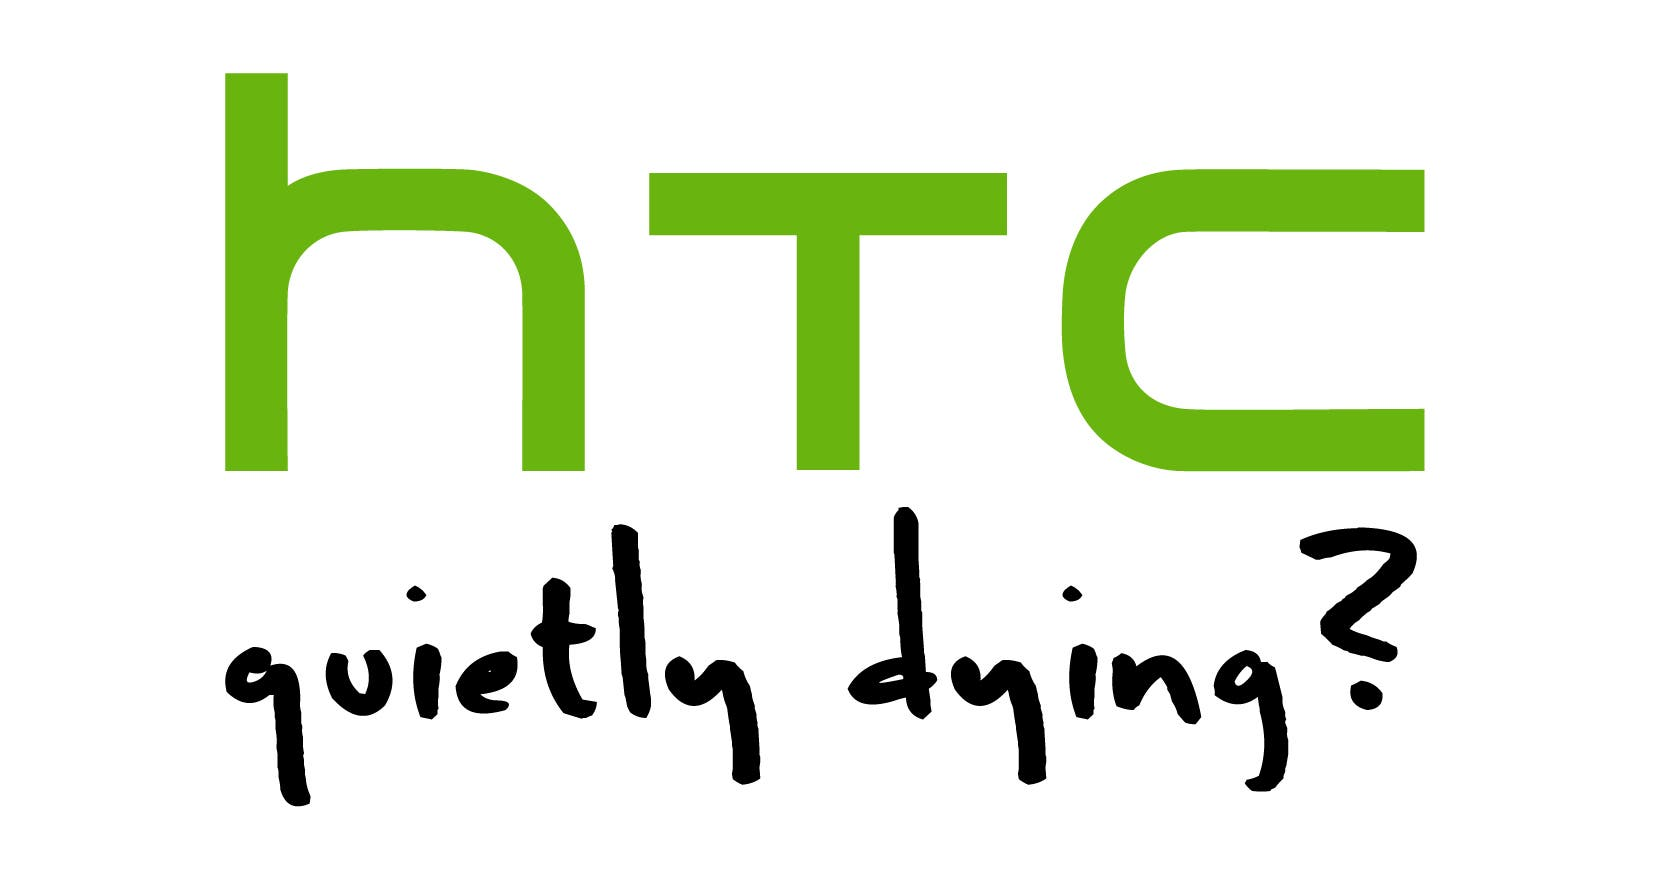 htc quietly dying techtäglich: Links zum Wochenende am 23. August 2013